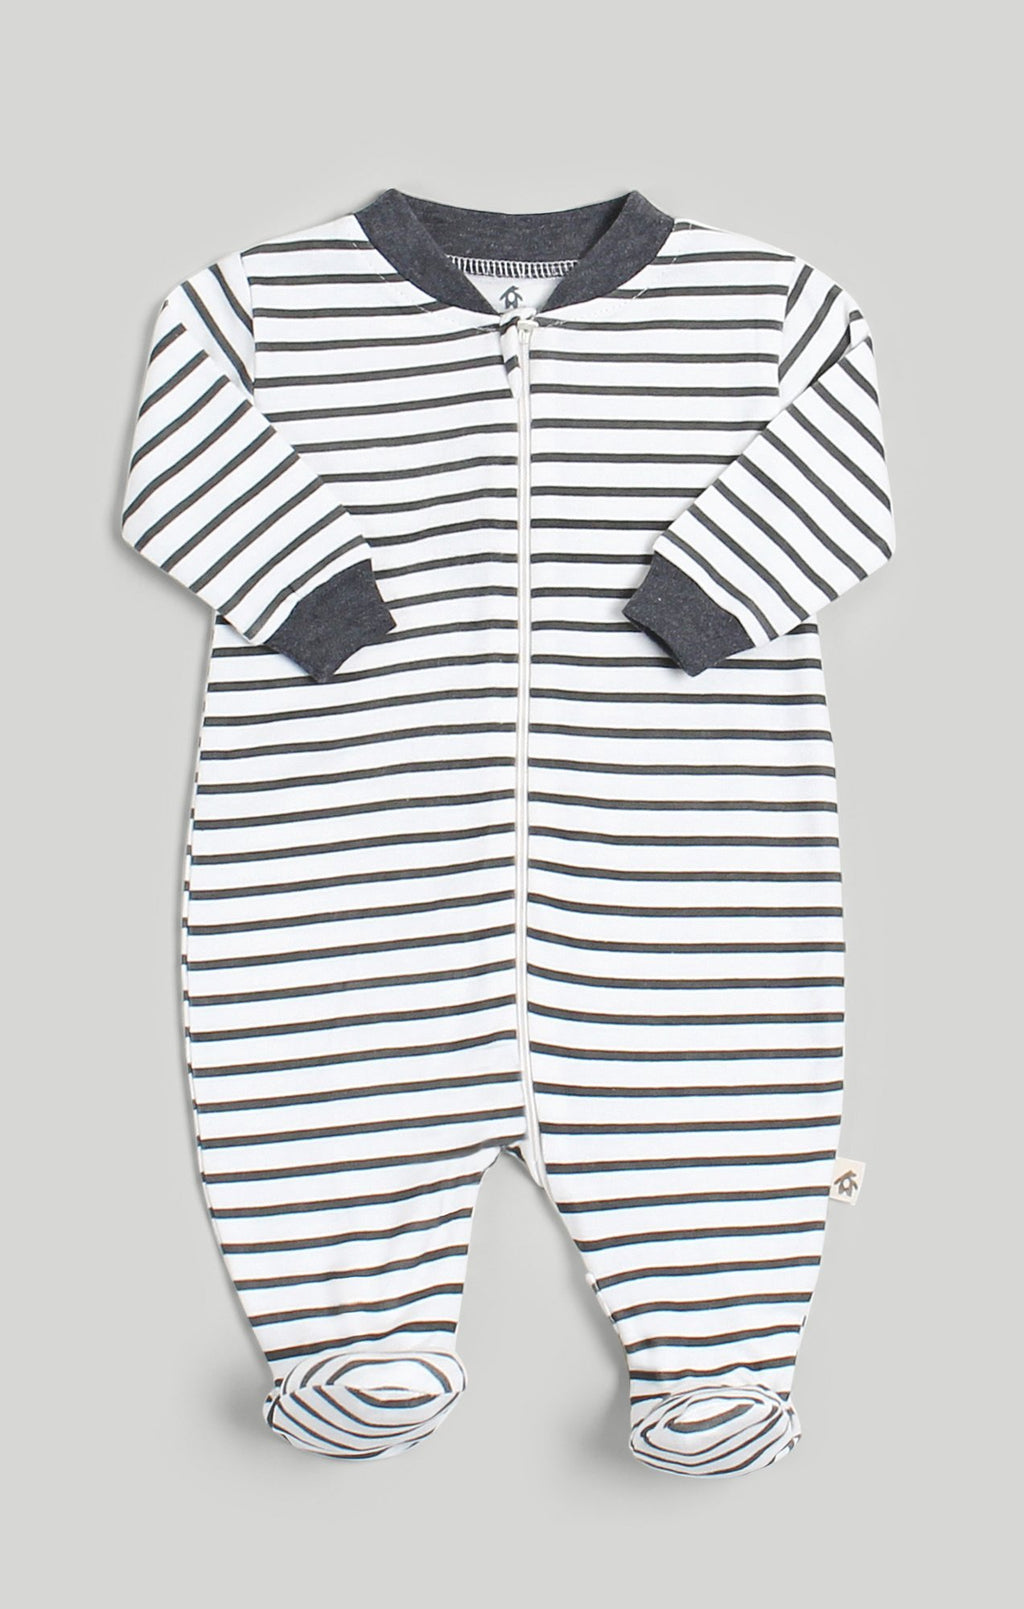 Baby Clothes | Stripe Baby Sleeper